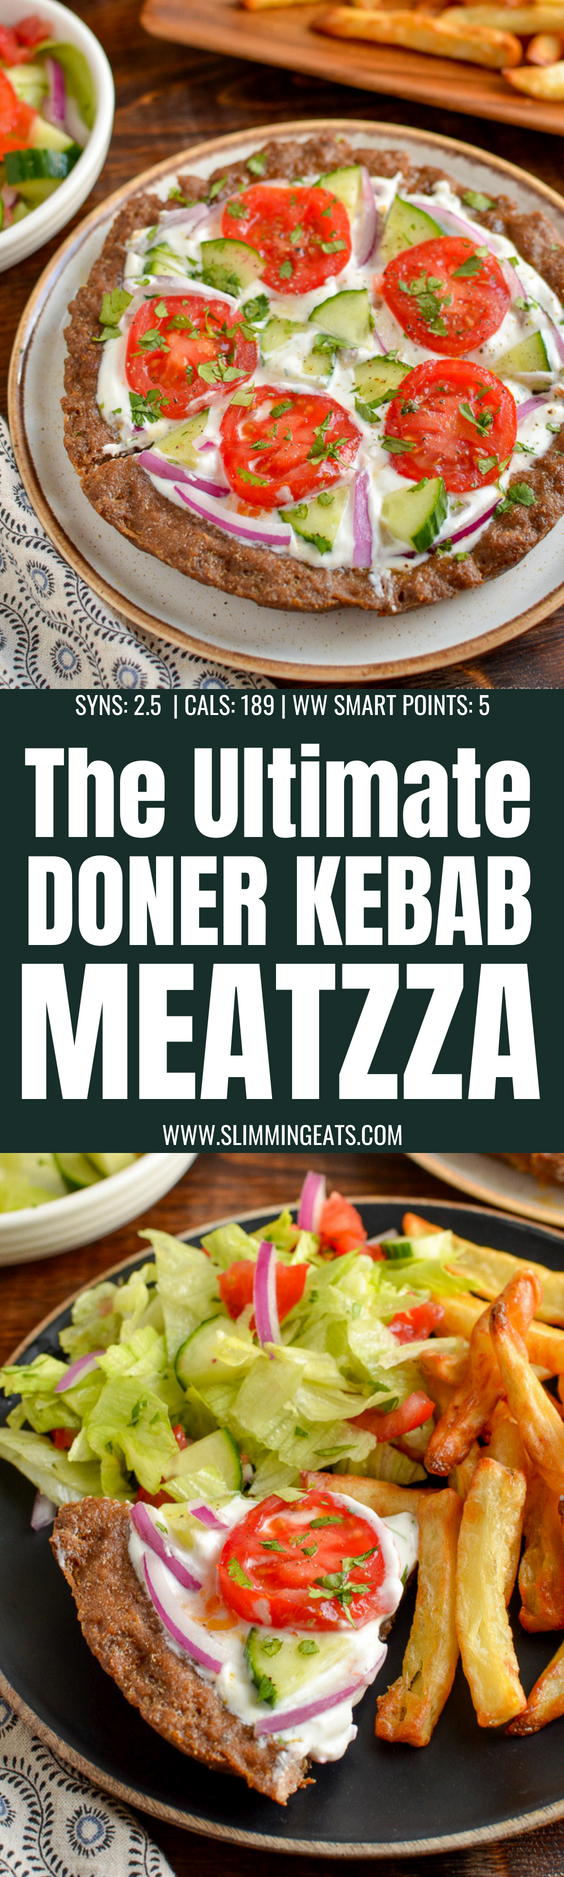 Doner Kebab Meatzza - the ultimate low syn fakeaway for when you can't decide between pizza or a kebab.  | gluten free, dairy free, Slimming World and Weight Watchers friendly